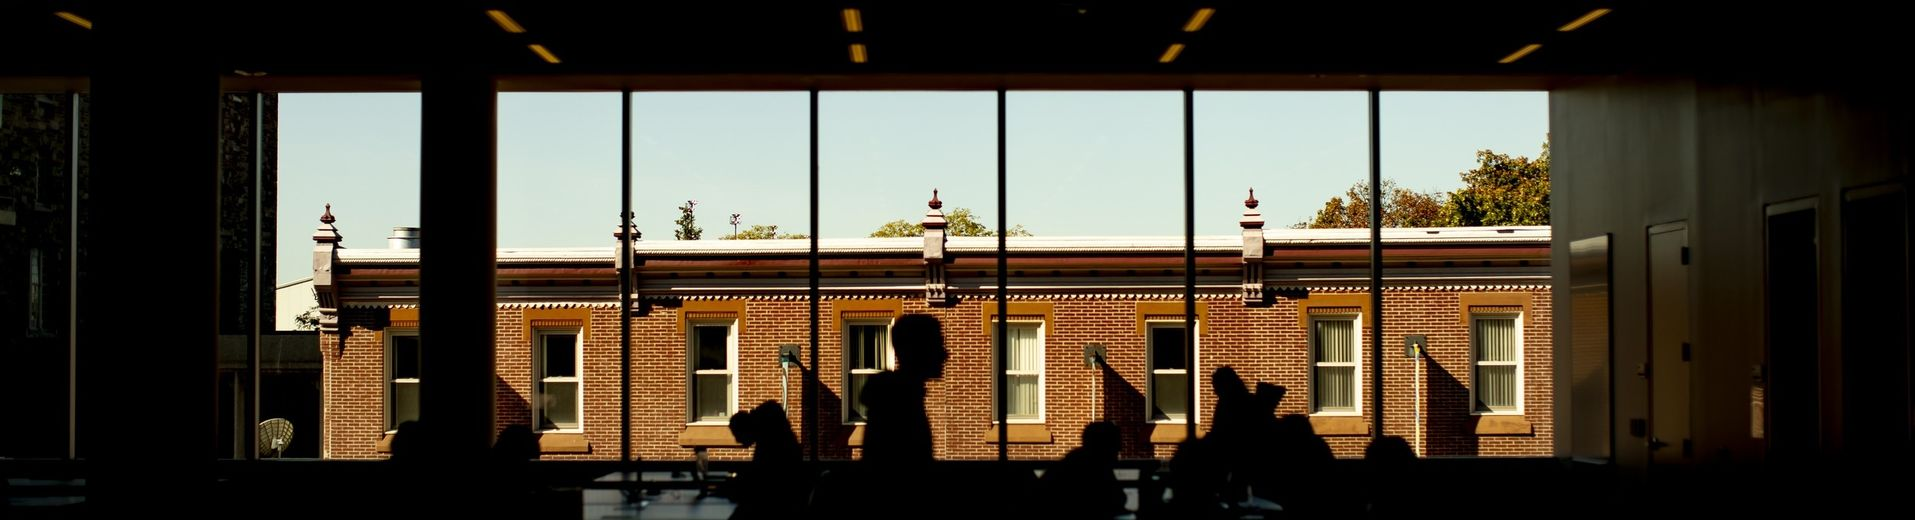 abstract image of students studying in Charles Library.